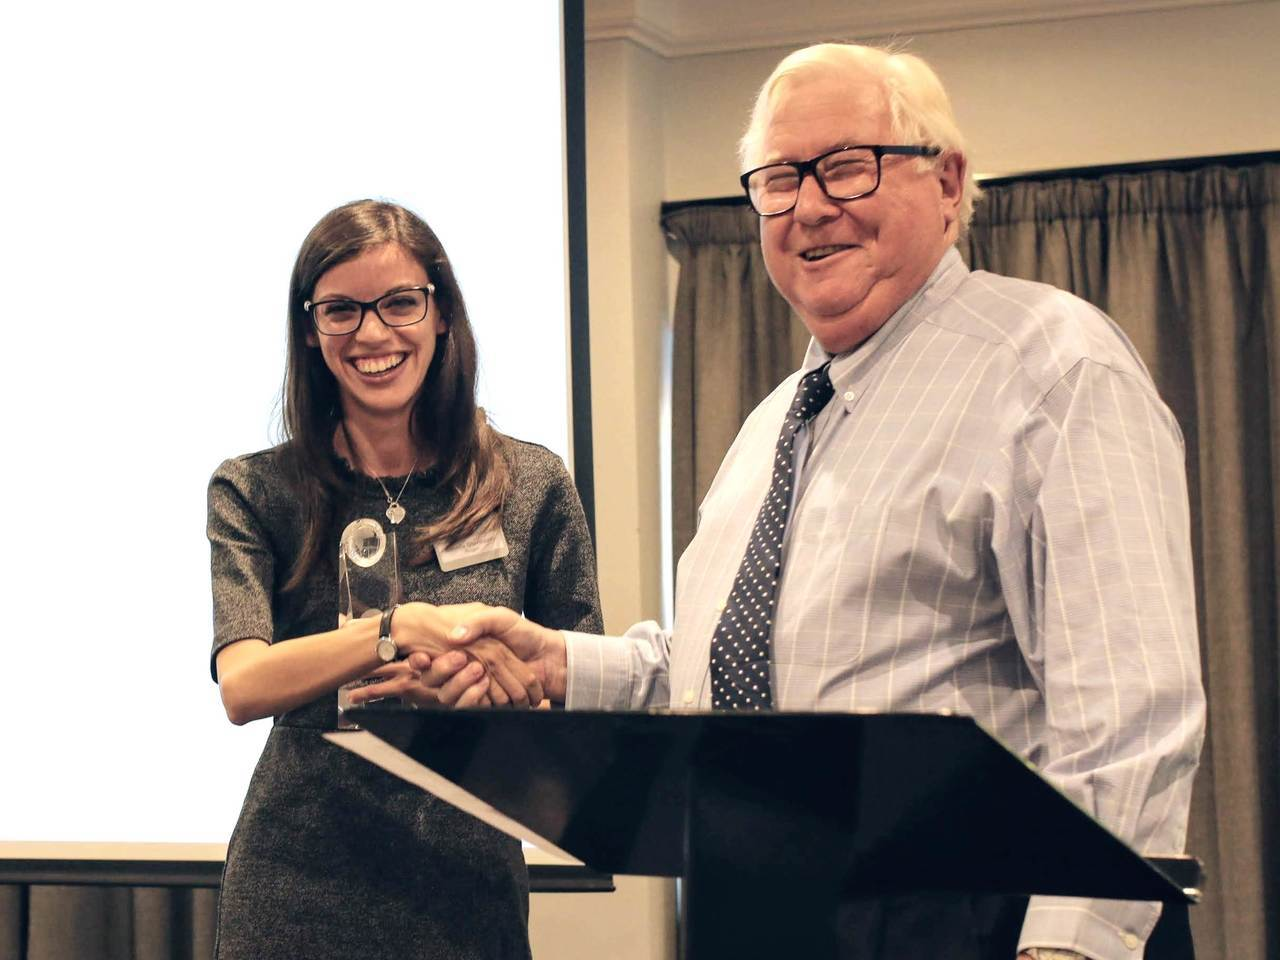 Isabella Giovinazzo receiving the Best Poster Prize trophy from Brian Murphy, Chairman of the Britest Board at Britest Day 2018, which took place on Thursday 18th October 2018 in Warrington, UK.